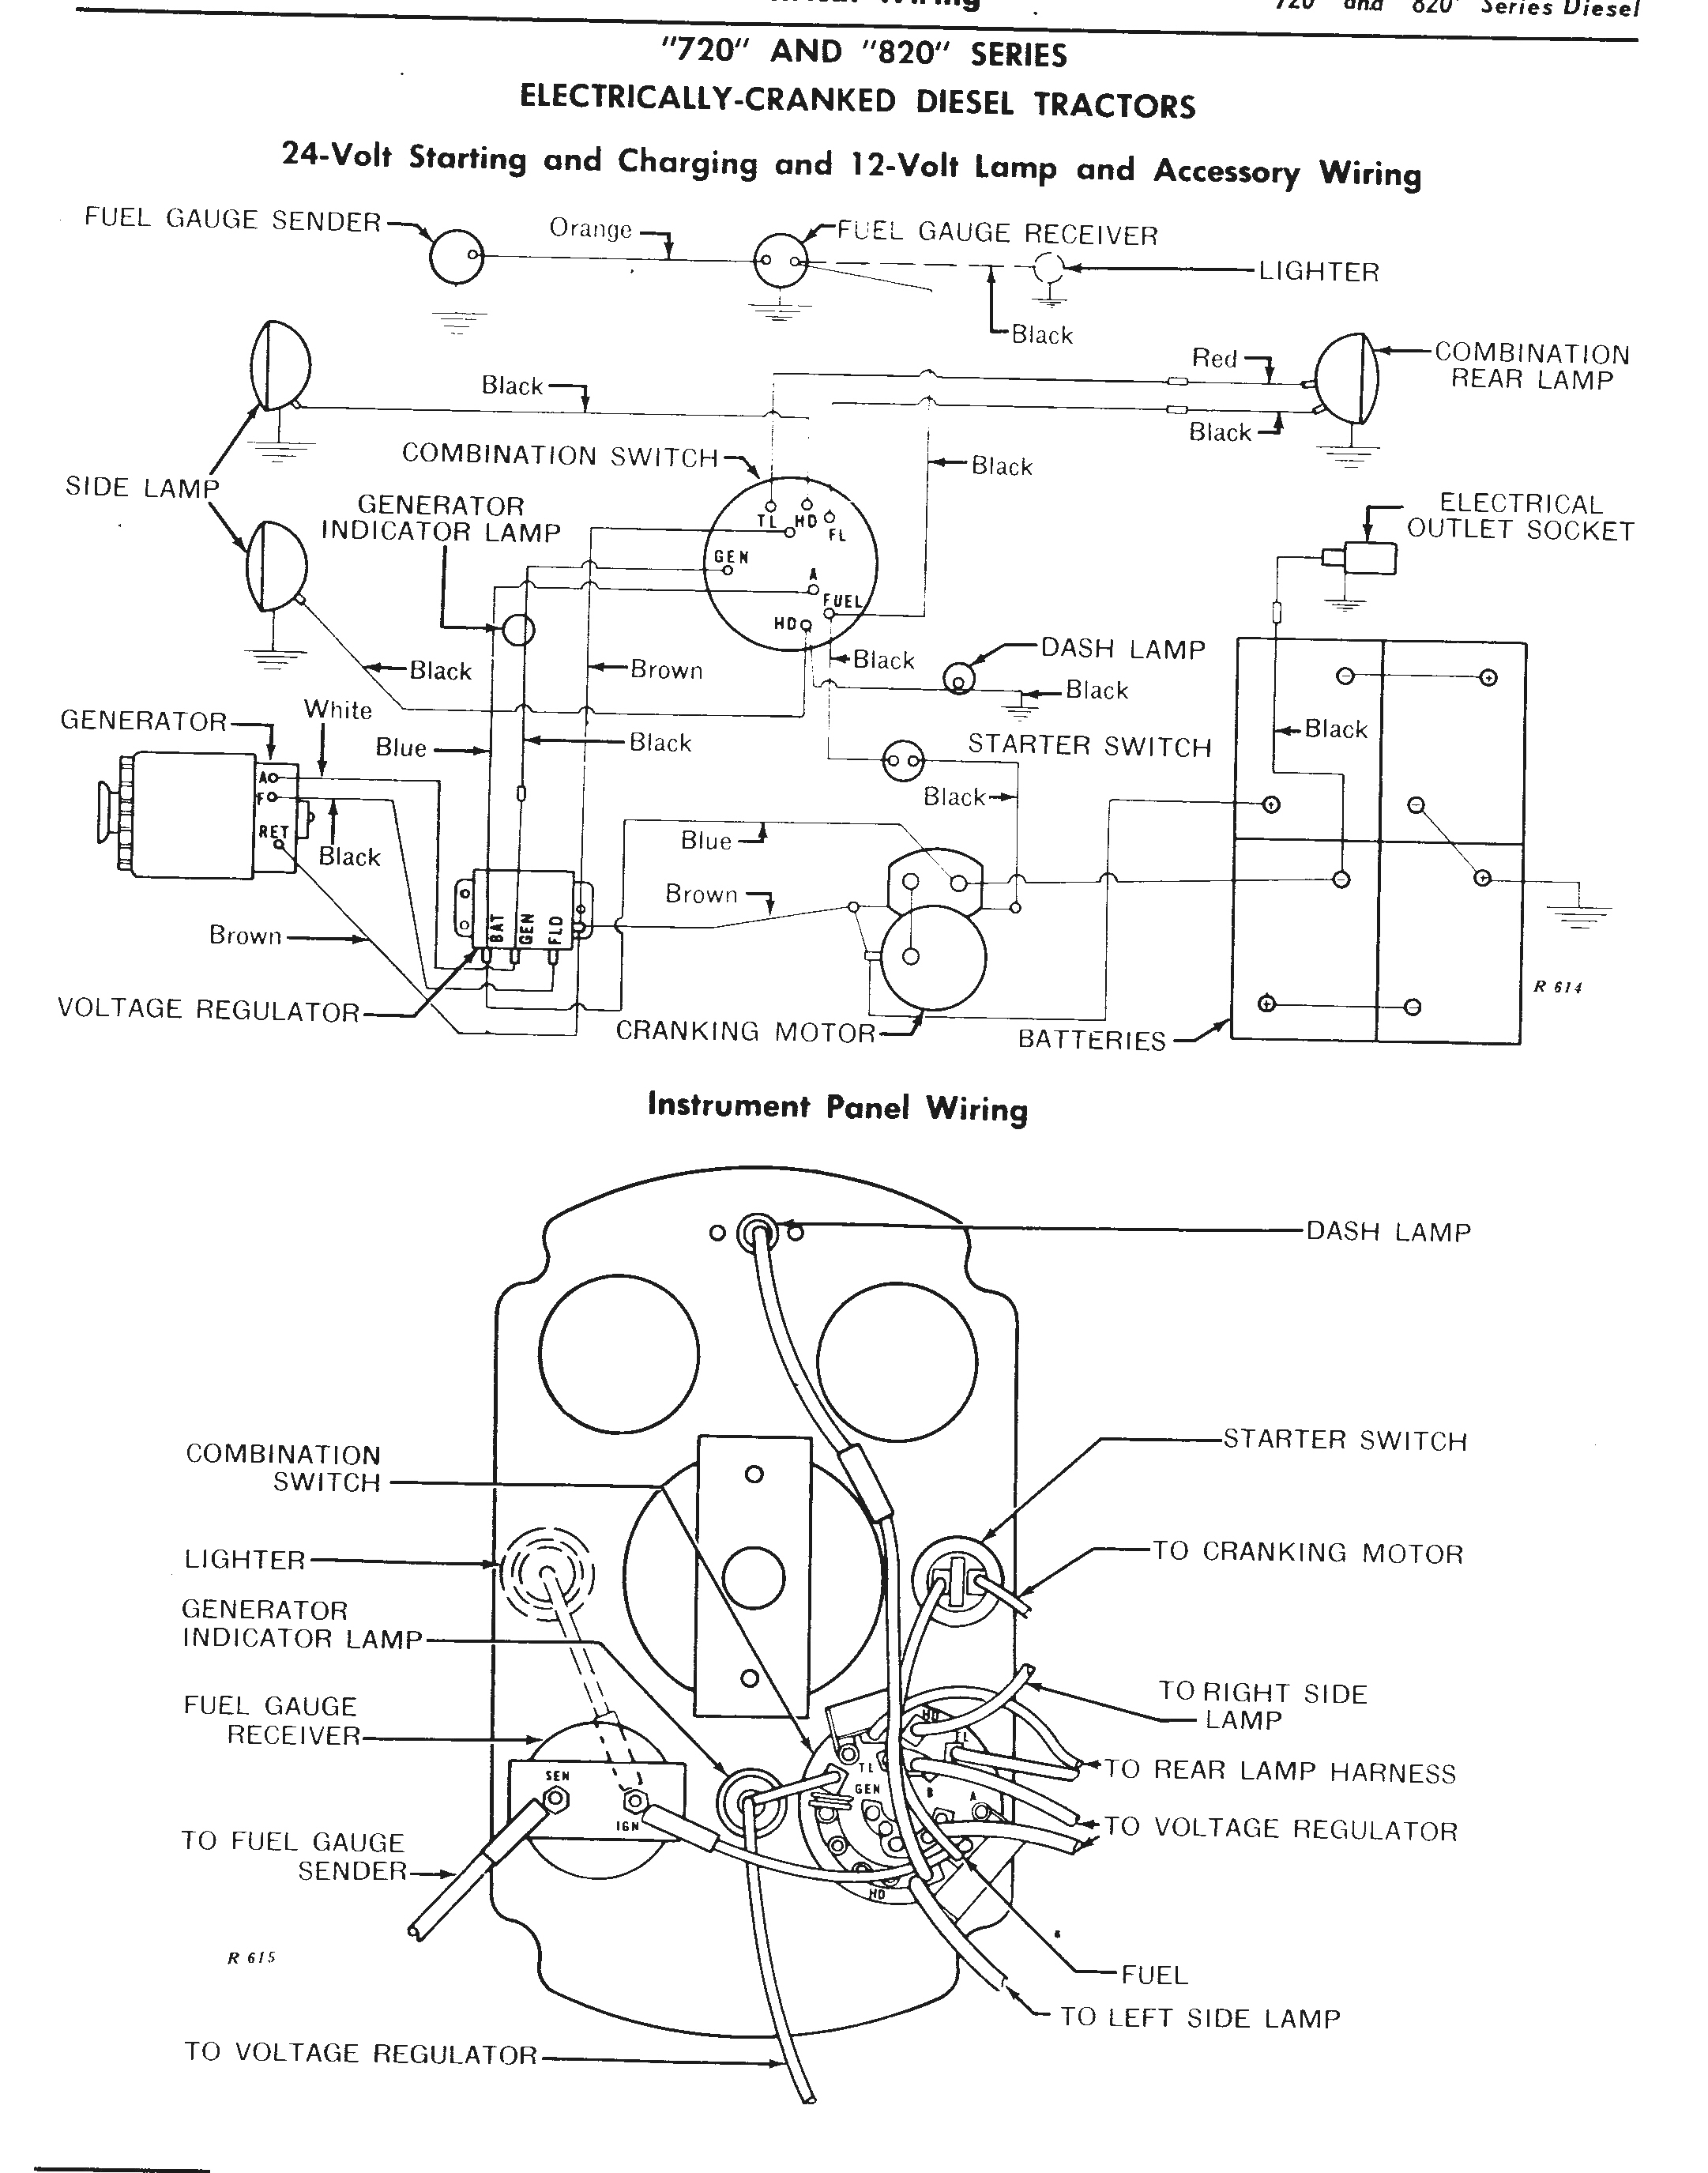 deere_24v_wiring the john deere 24 volt electrical system explained